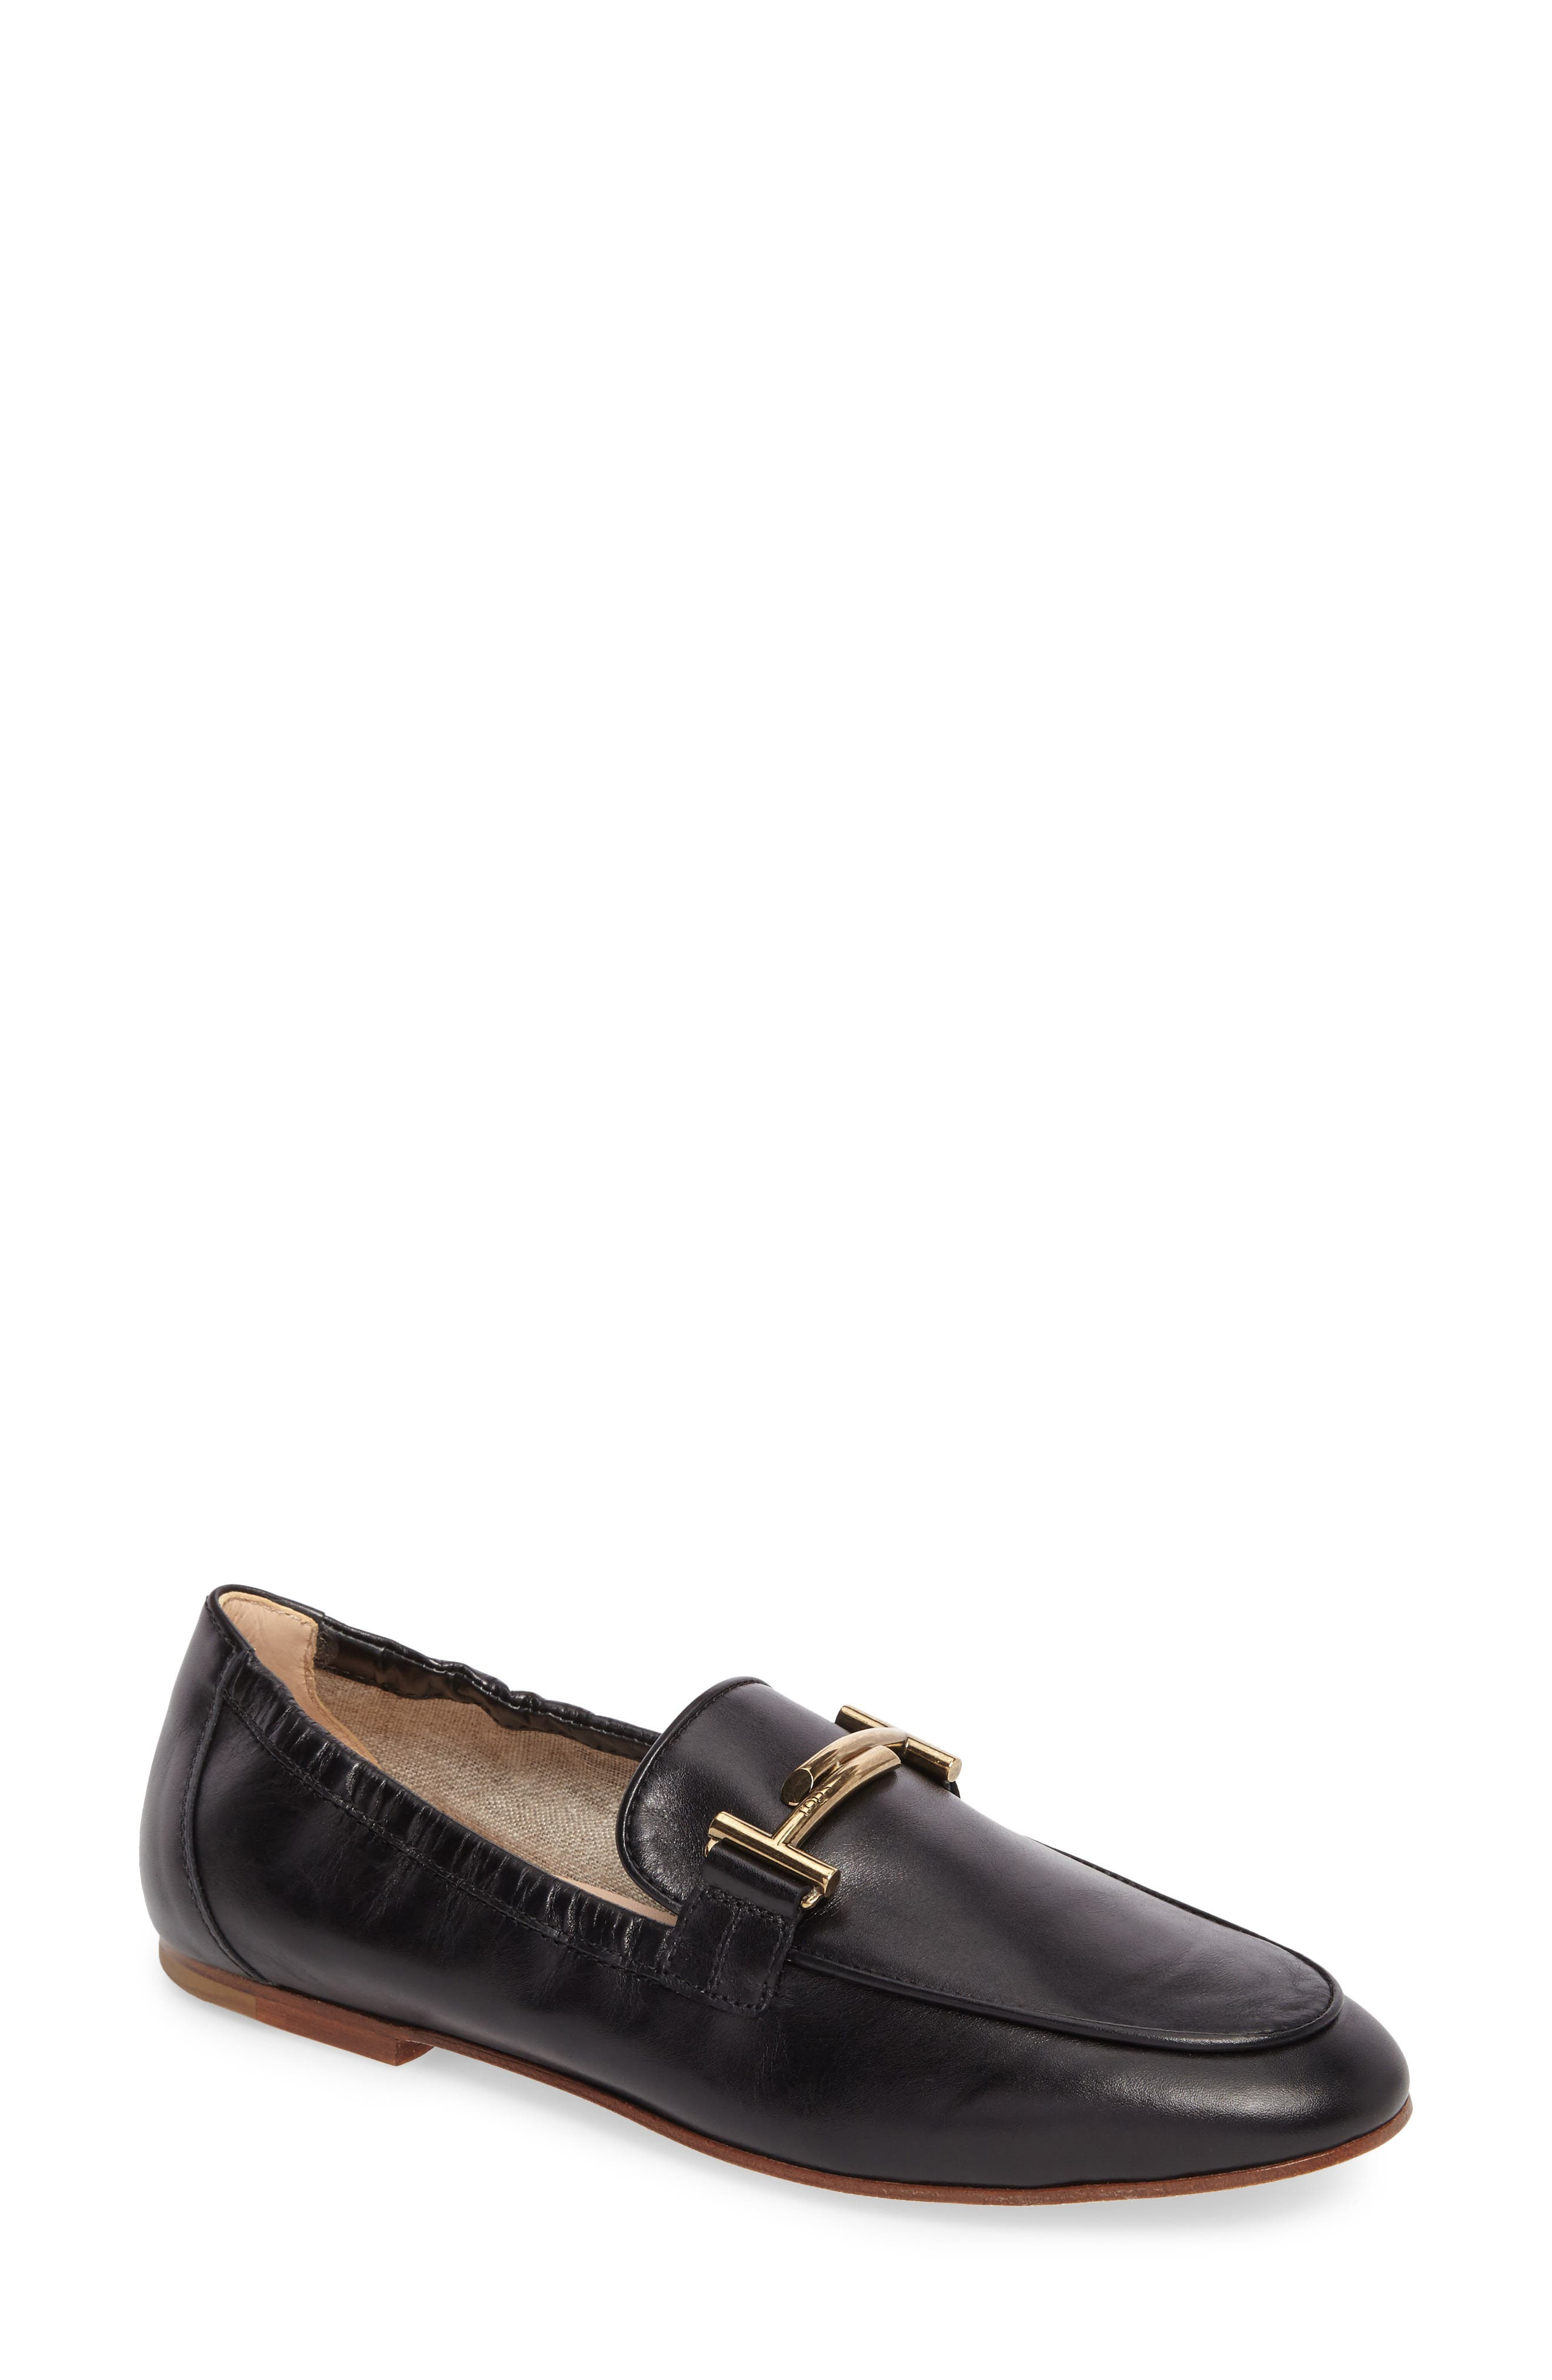 Double T Scrunch Loafer,                         Main,                         color, Black